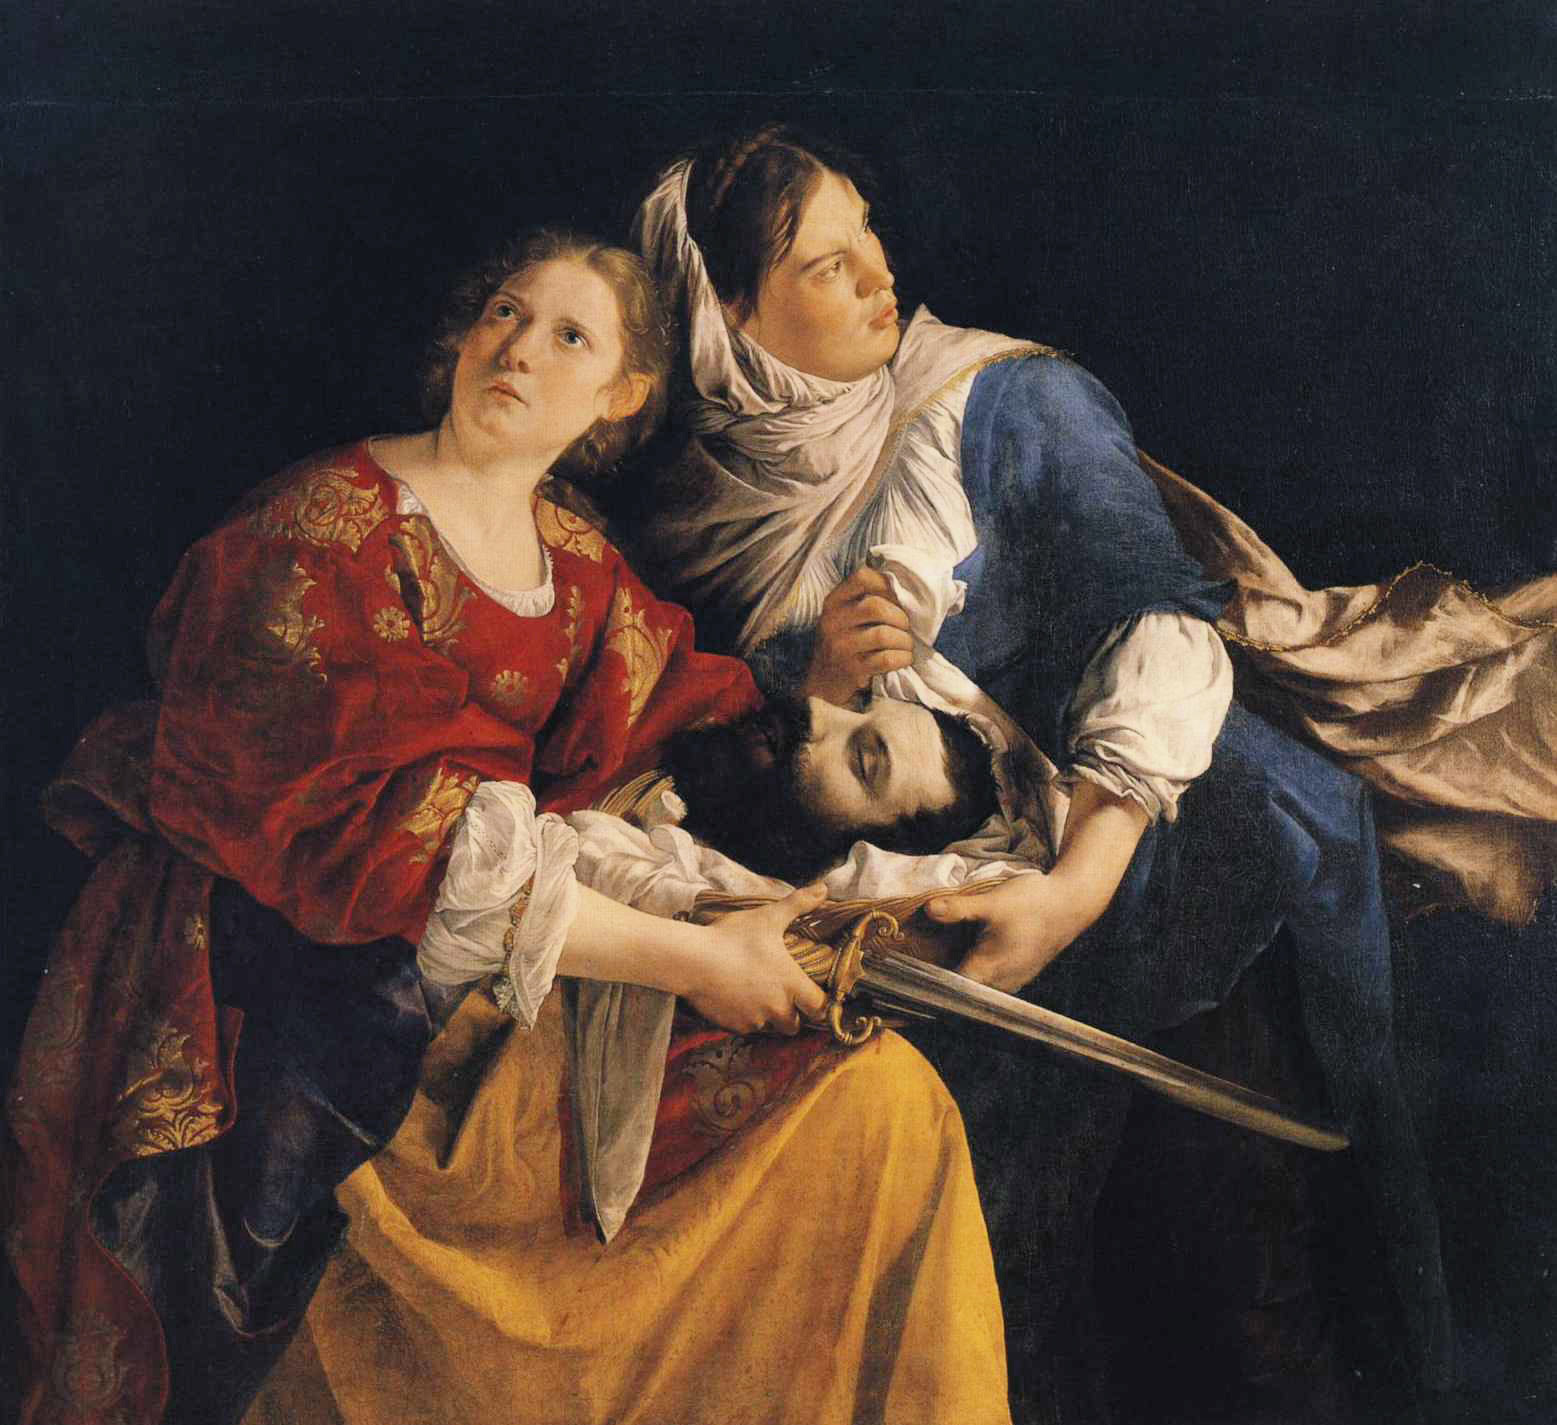 Judith and Her Maidservant with the Head of Holofernes :: Orazio Gentleschi - Bible scenes in art and painting ôîòî